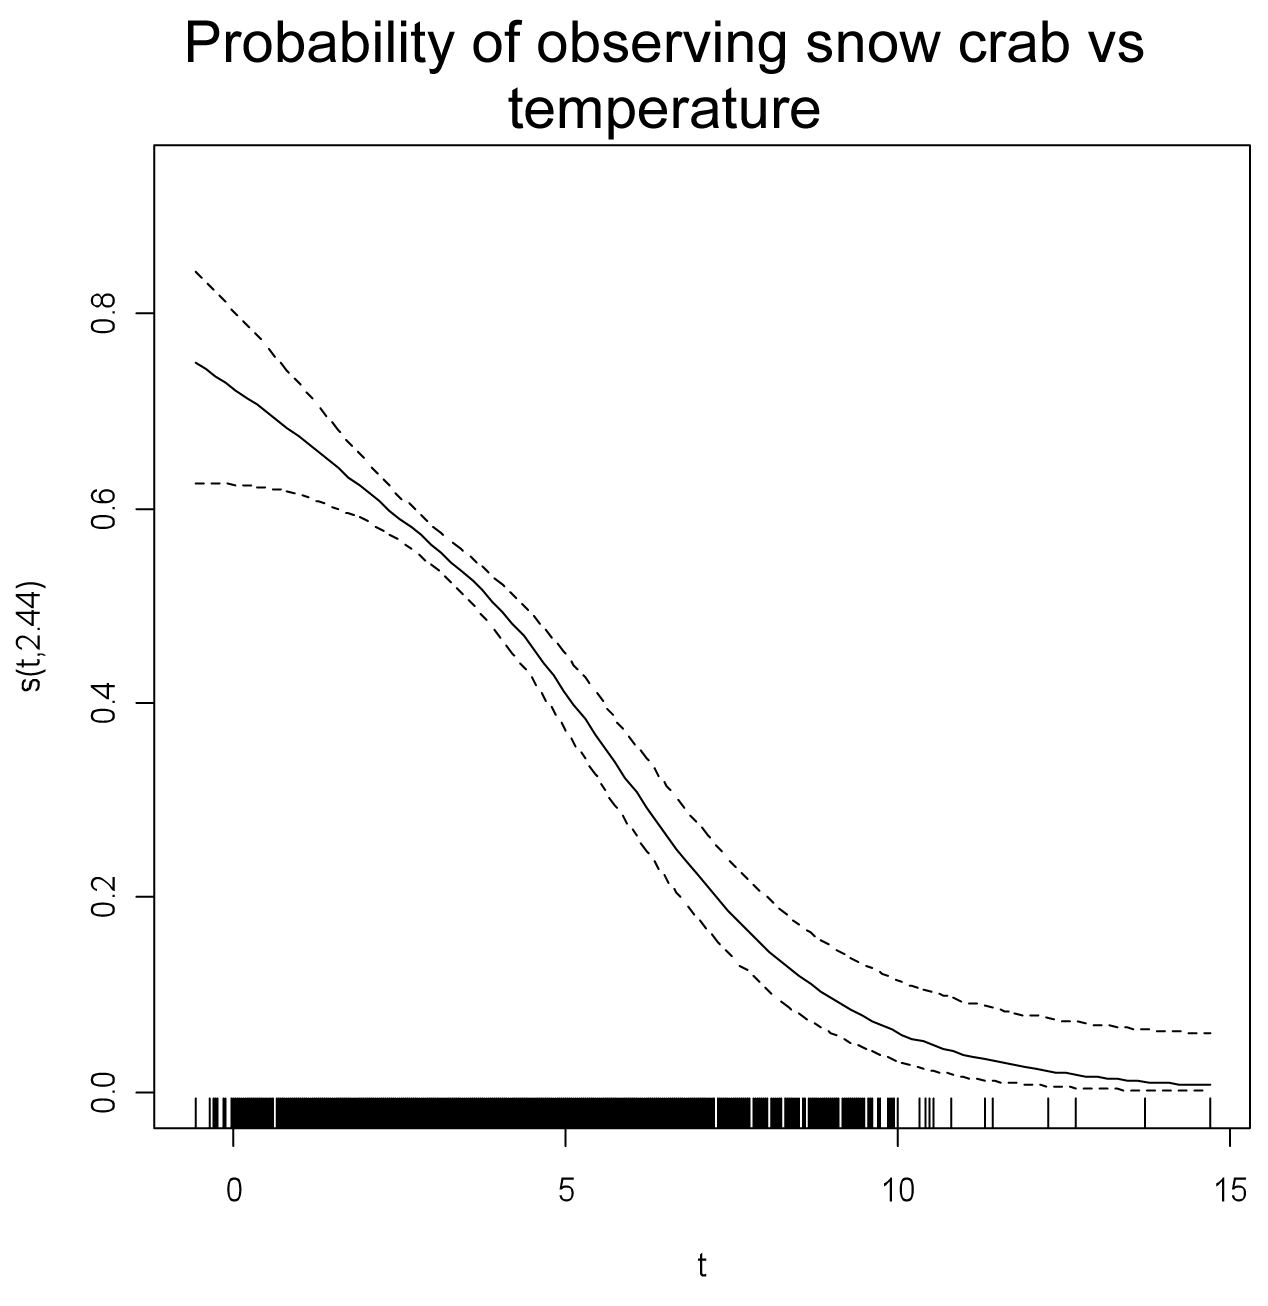 Figure 4 - Probability of observing snow crav vs. temperature